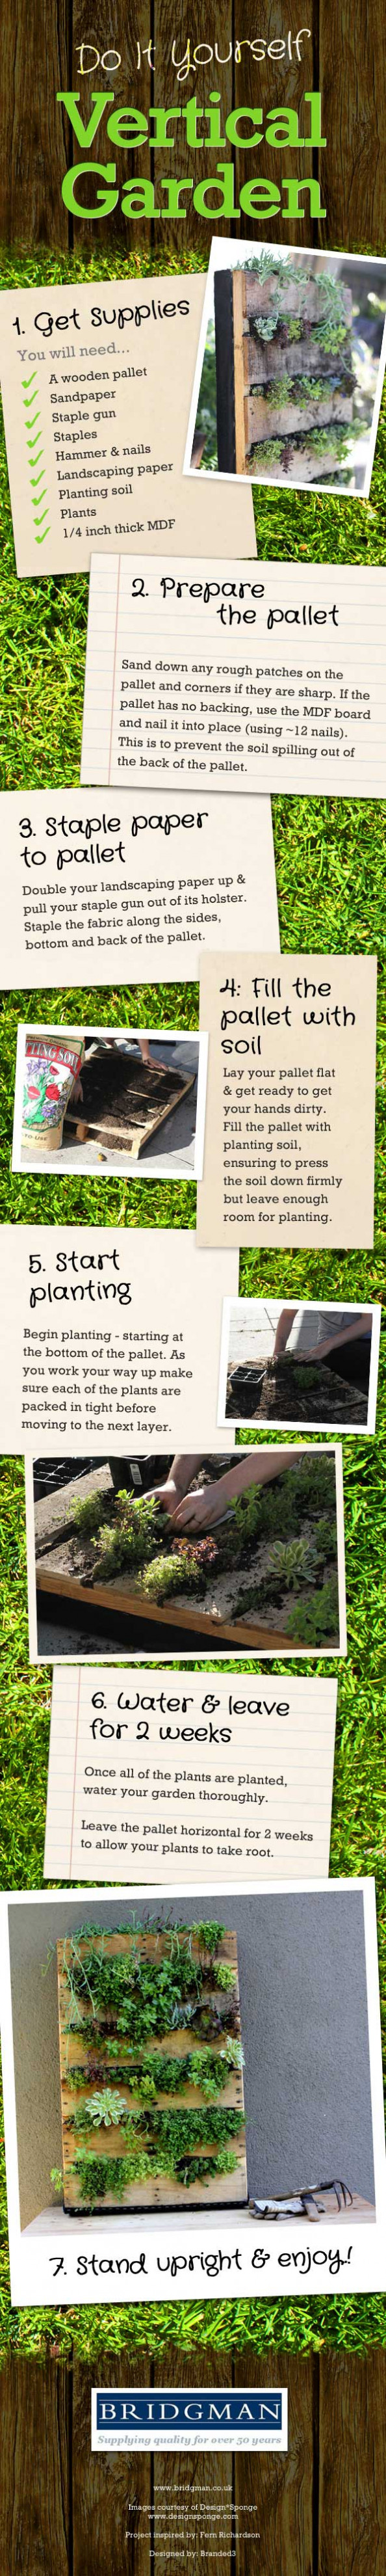 Do-it-yourself Vertical Garden Infographic